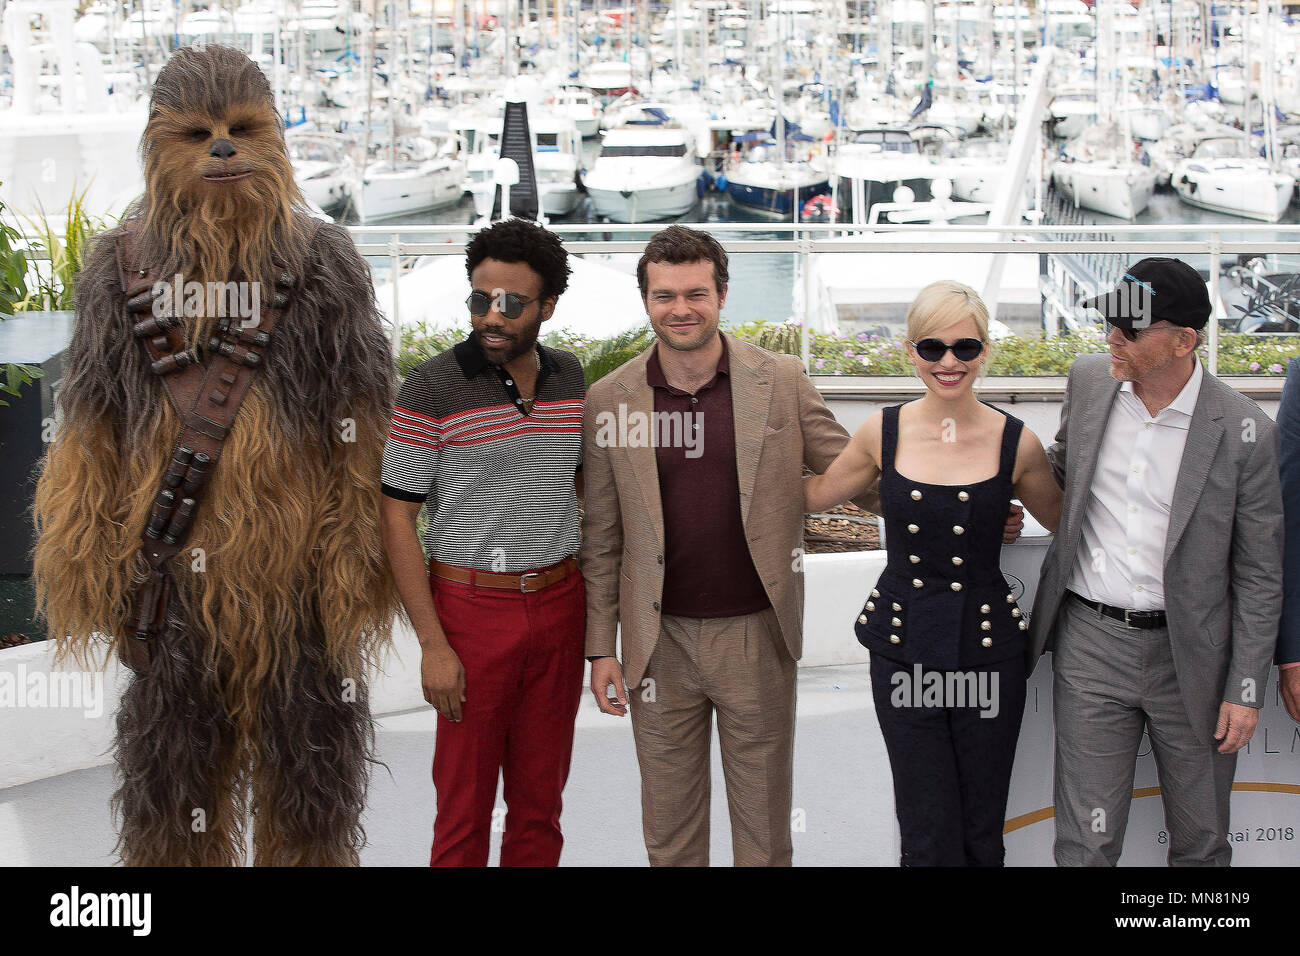 Cannes, France. 15th May 2018. (L-R) Chewbacca (in costume), Donald Glover, Alden Ehrenreich, Emilia Clarke, director Ron Howard at the 'Solo: A Star Wars Story' photocall during the 71st Cannes Film Festival at the Palais des Festivals on May 15, 2018 in Cannes, France. Credit: John Rasimus/Media Punch ***FRANCE, SWEDEN, NORWAY, DENARK, FINLAND, USA, CZECH REPUBLIC, SOUTH AMERICA ONLY*** Credit: MediaPunch Inc/Alamy Live News - Stock Image